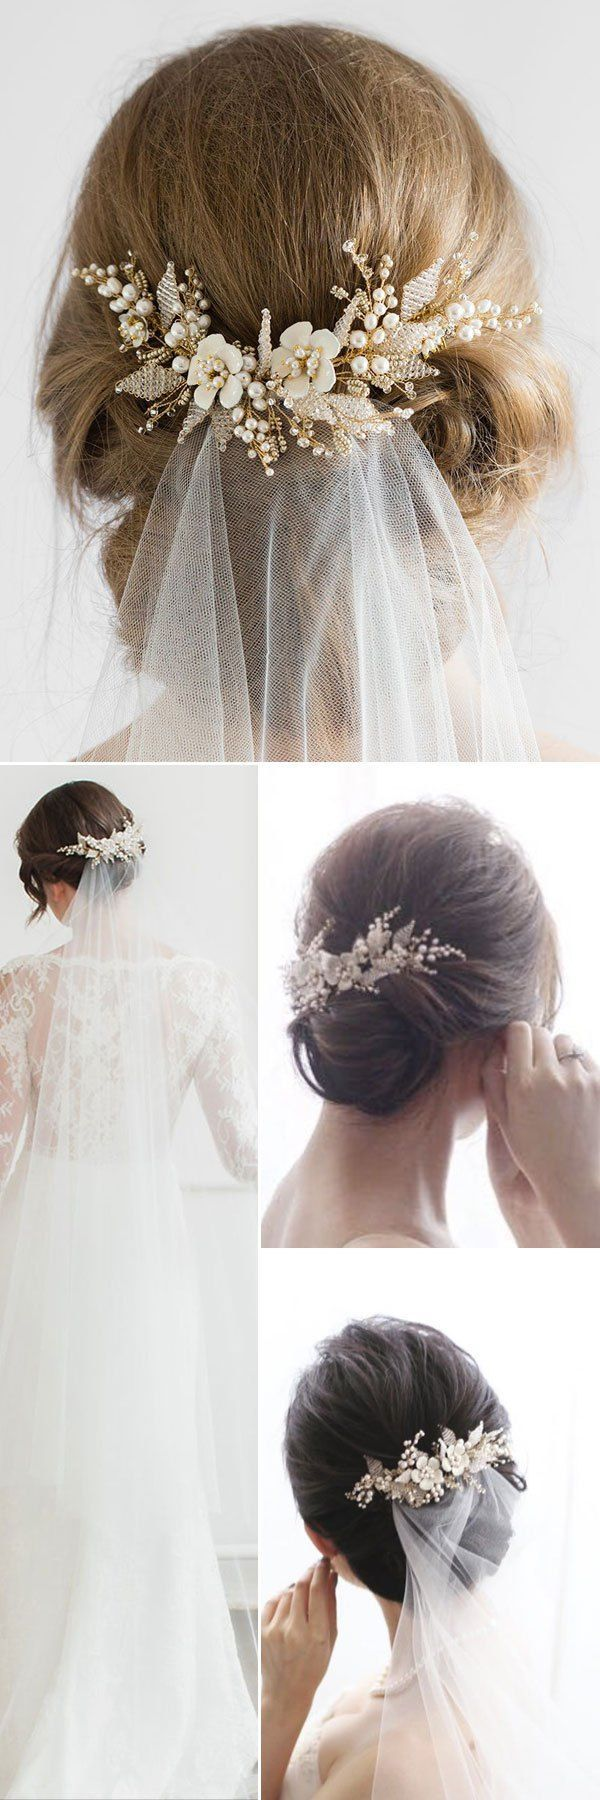 Photo of Top 20 Wedding Hairstyles with Veils and Accessories,  #accessories #differenthairstylescasua…